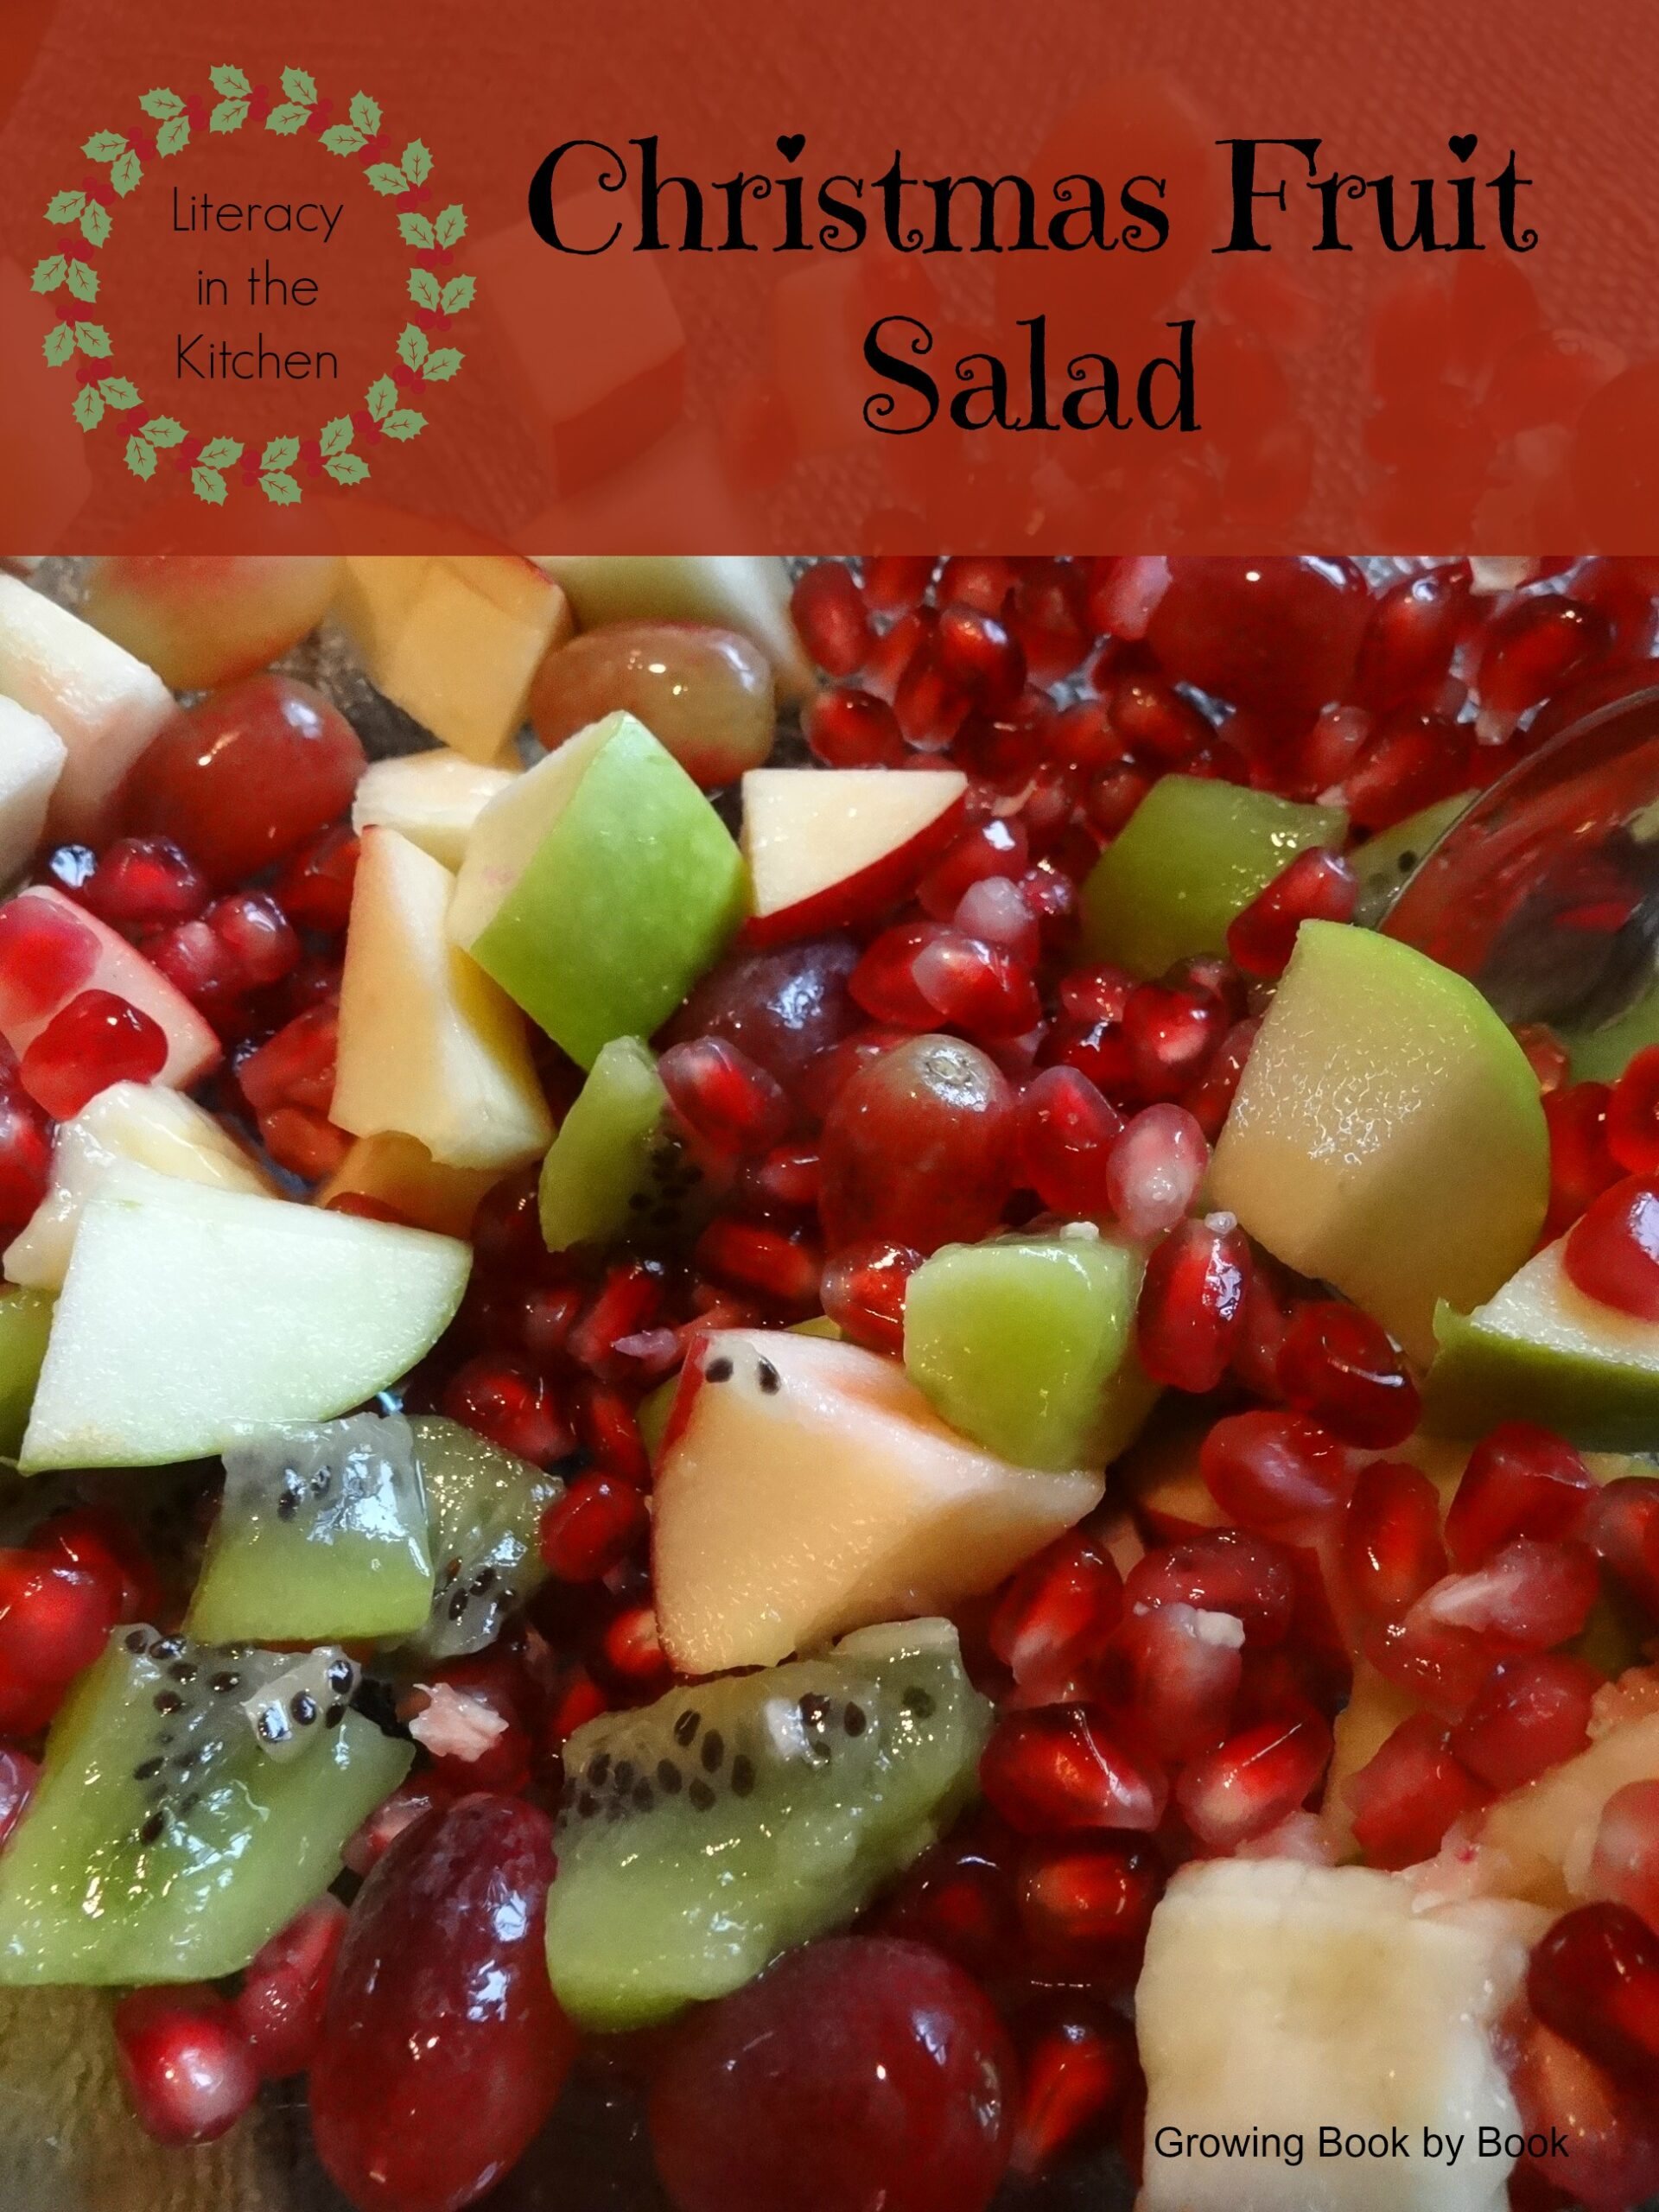 A delicious Christmas fruit salad recipe that can be made with the kids and some fun learning ideas to go along with the fun!